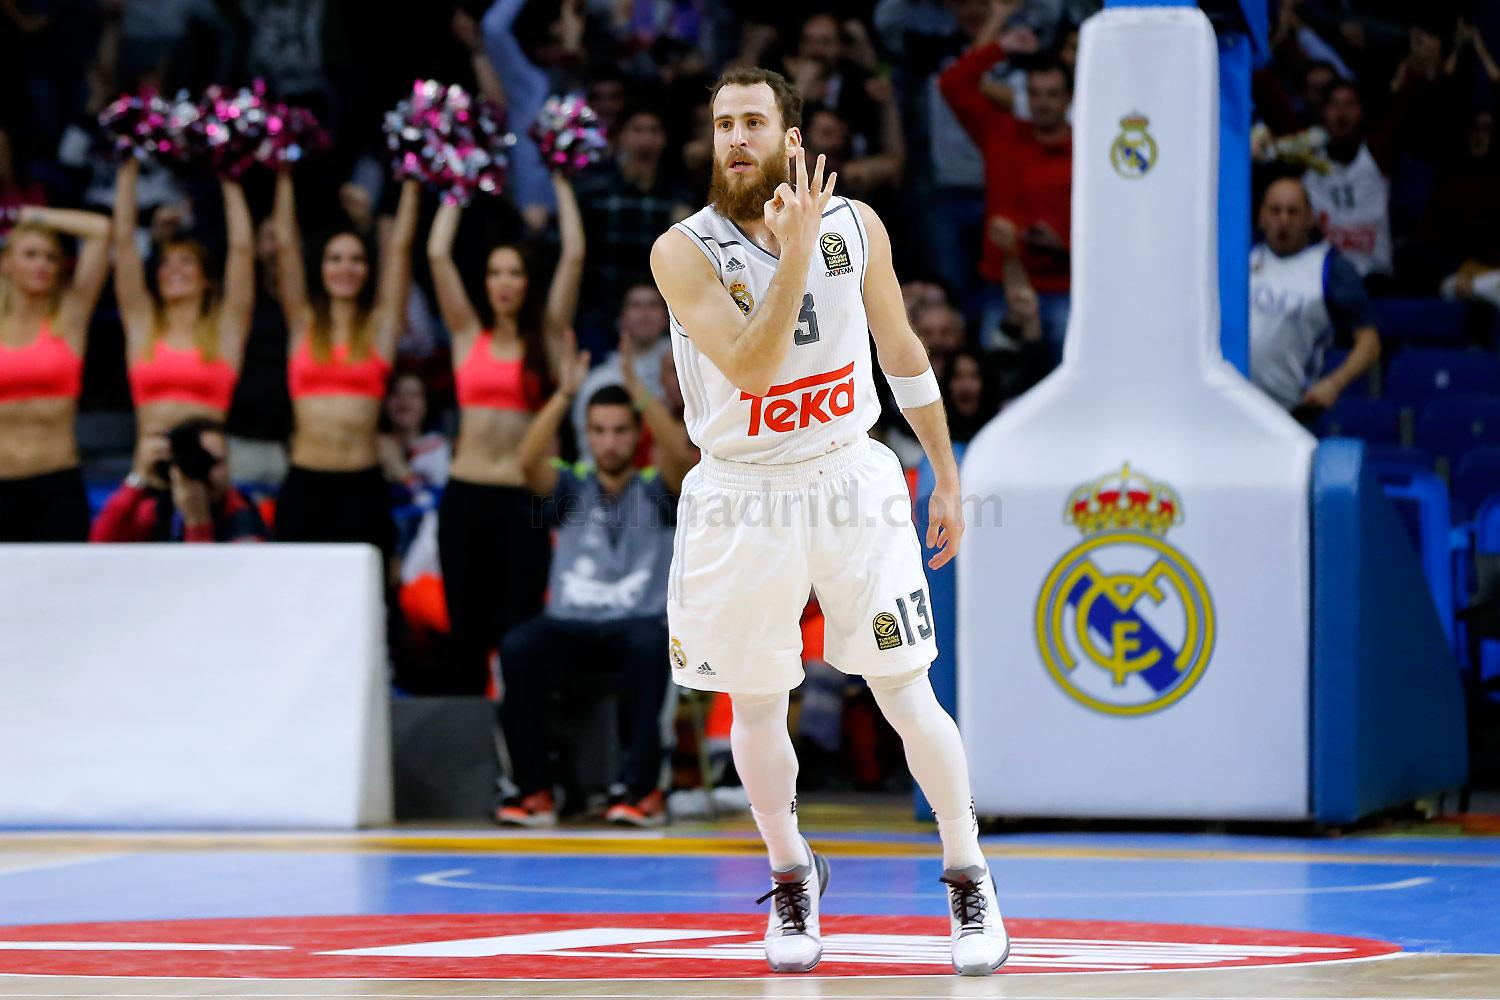 Real Madrid - Real Madrid - Brose Baskets - 30-12-2015